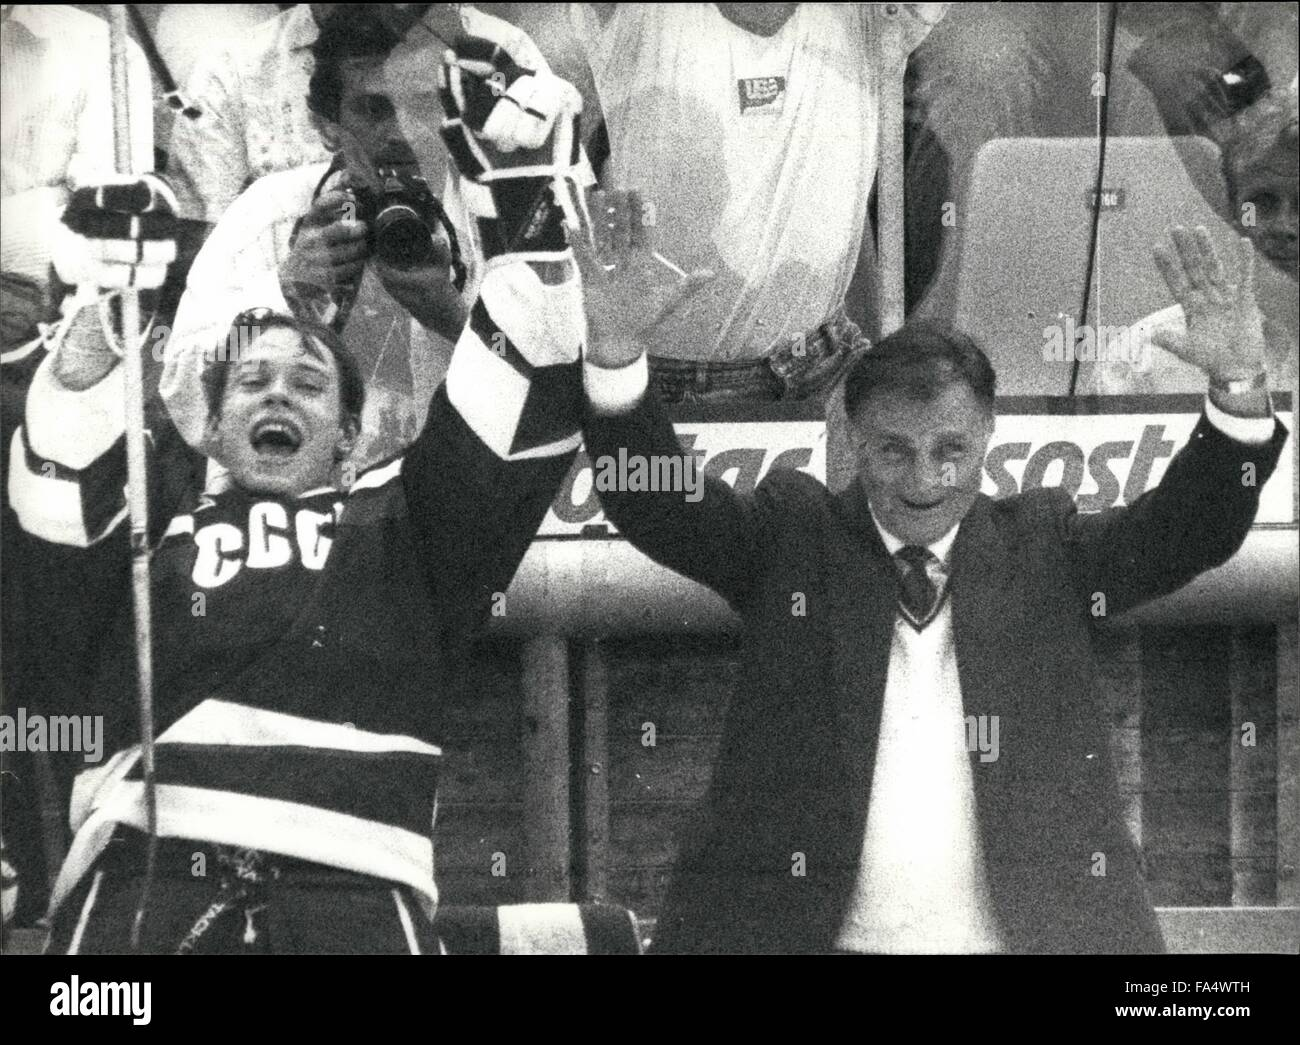 1970 - Icehockey-Worldchampionships In Switzerland: The Icehockey-Worldchampionships took place in Bern/Switzerland Stock Photo